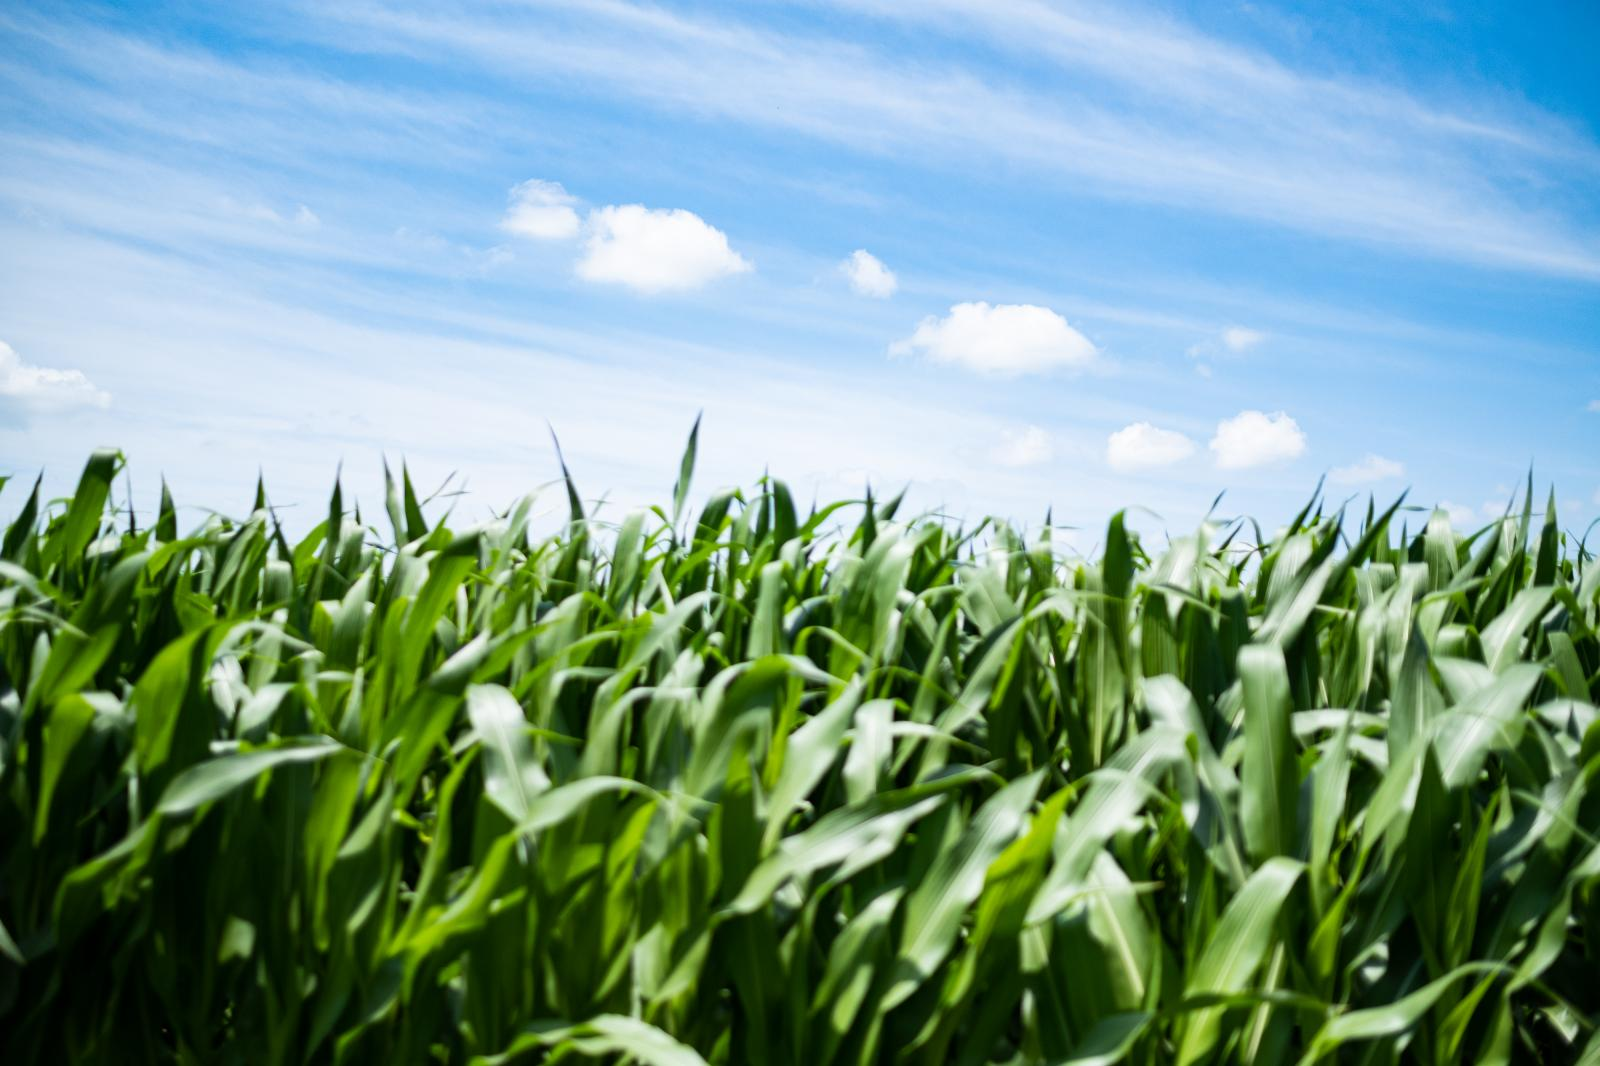 """Field corn, taken on July 5th. As the saying goes """"knee high by fourth of July,"""" this year we are far above knee high."""